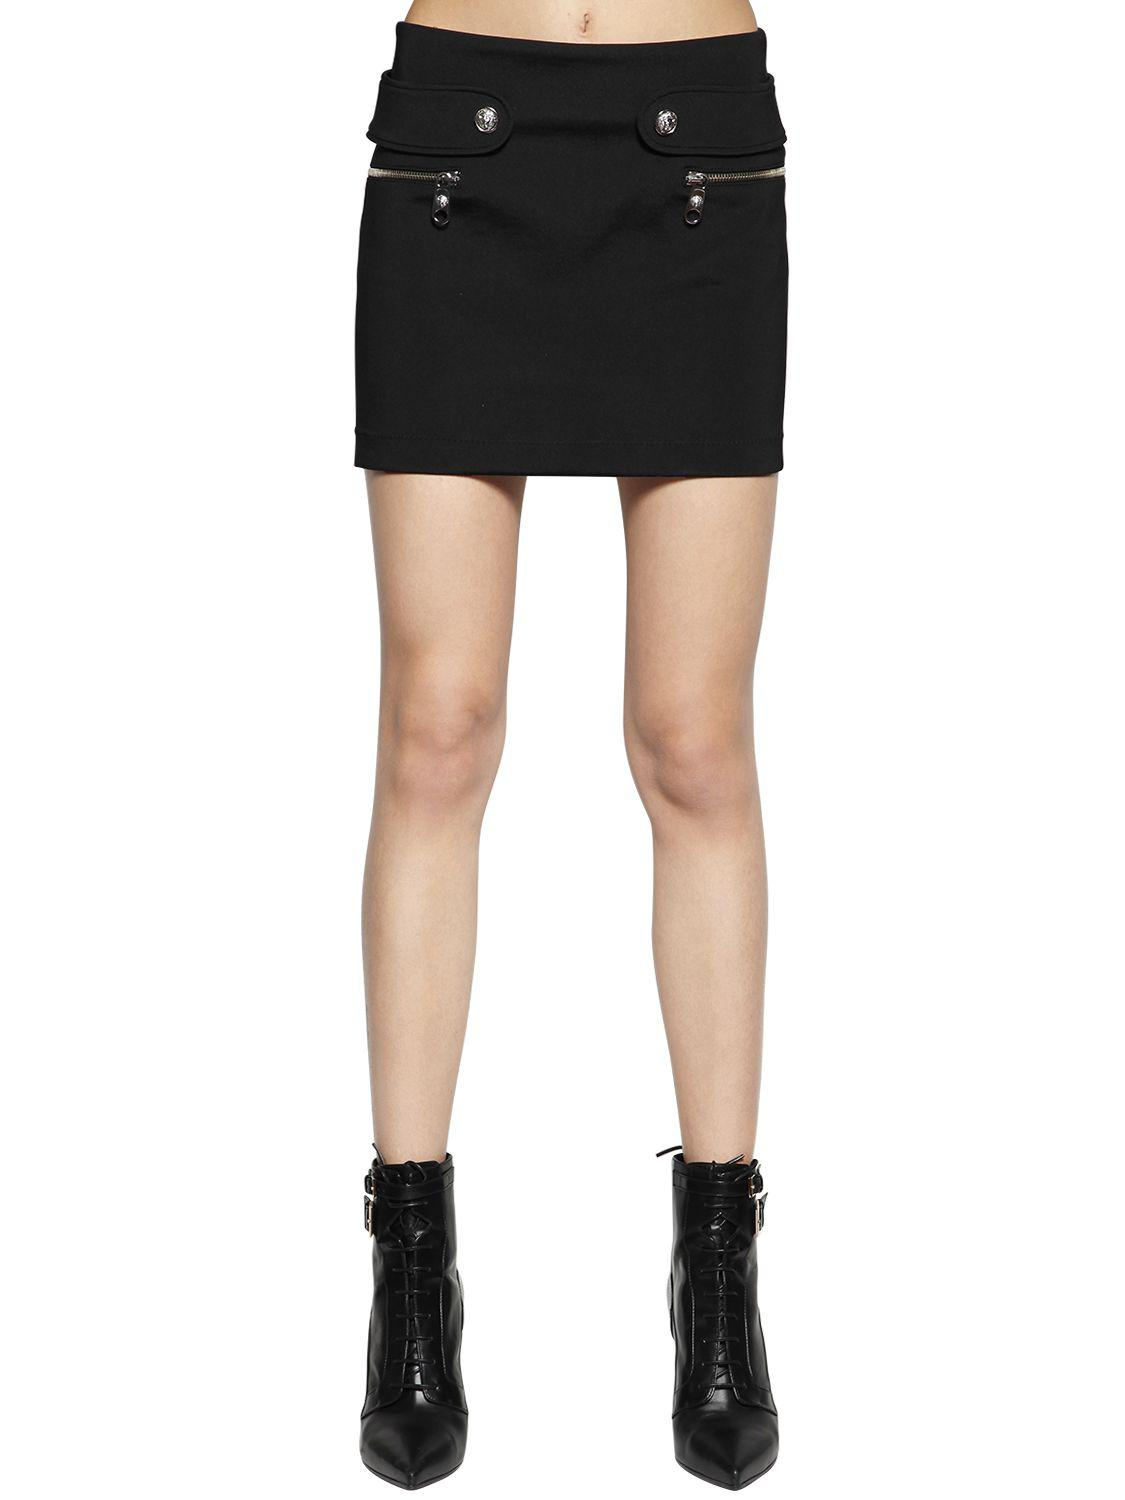 Black Puffy Miniskirt Versus Outlet Low Price Fee Shipping High Quality For Sale Discounts Cheap Price Free Shipping 2018 New Buy Cheap Price 4EriaC6O1j